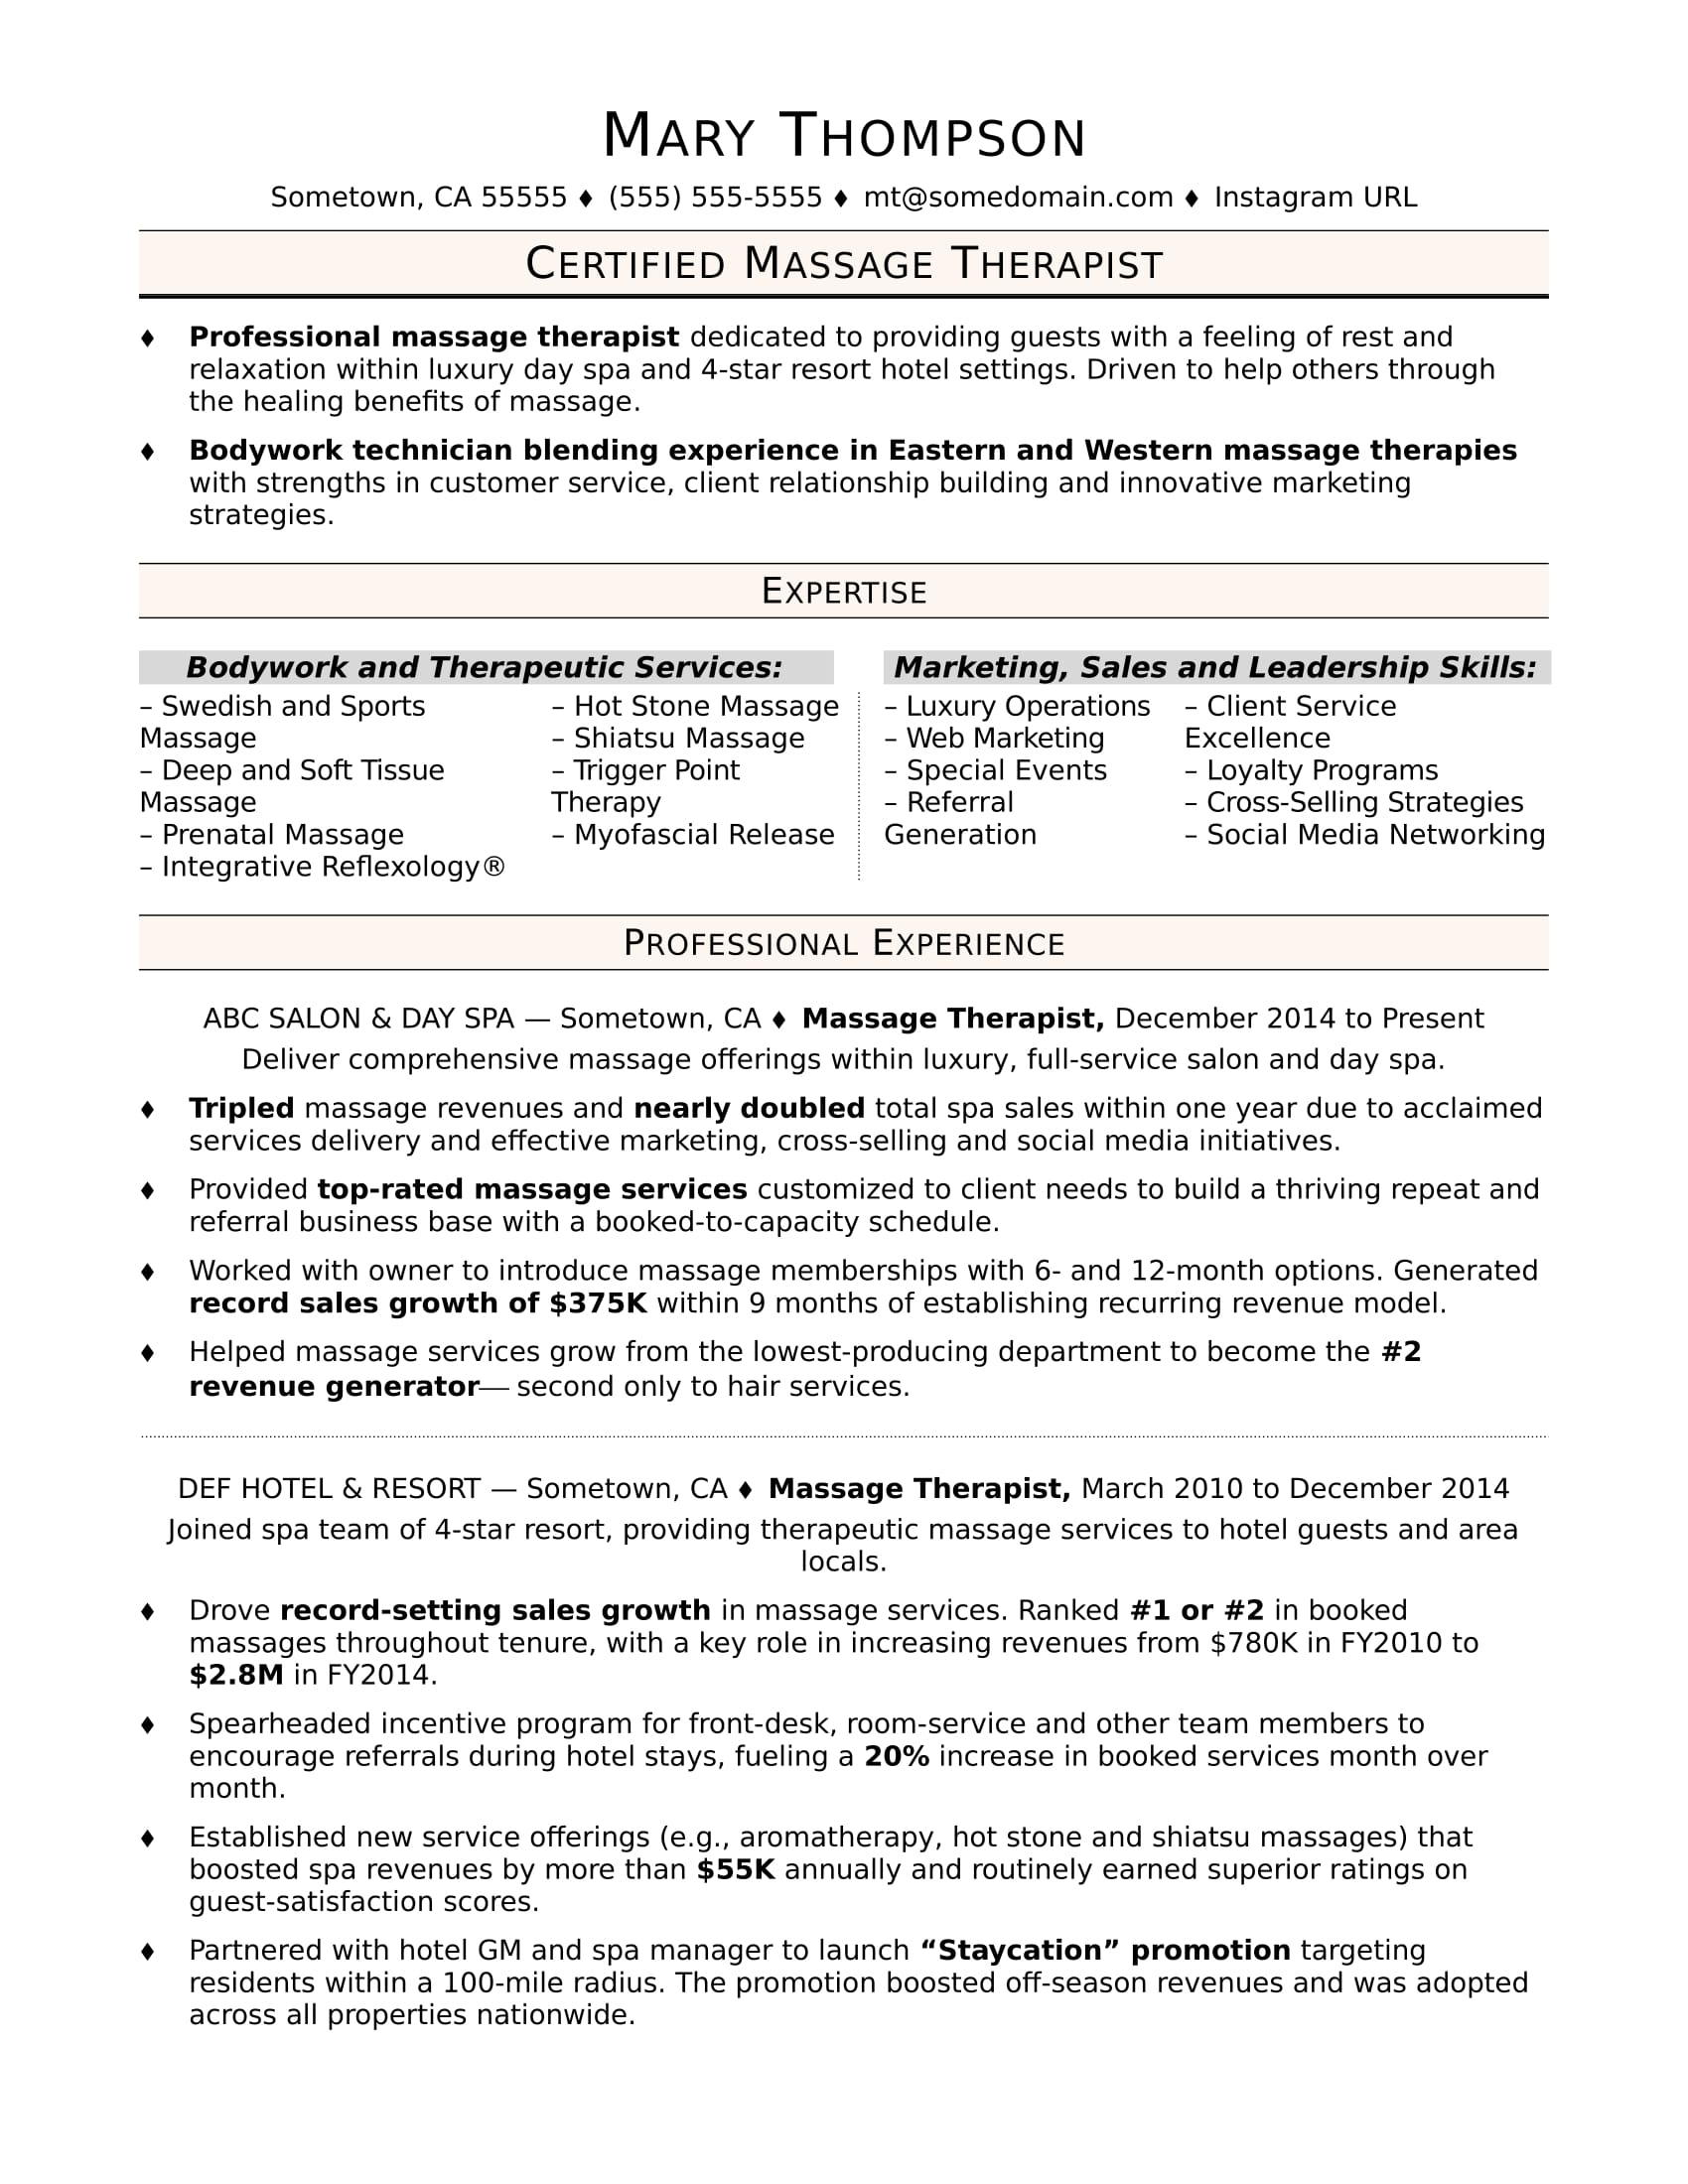 Massage Therapist Resume Sample Monster Com